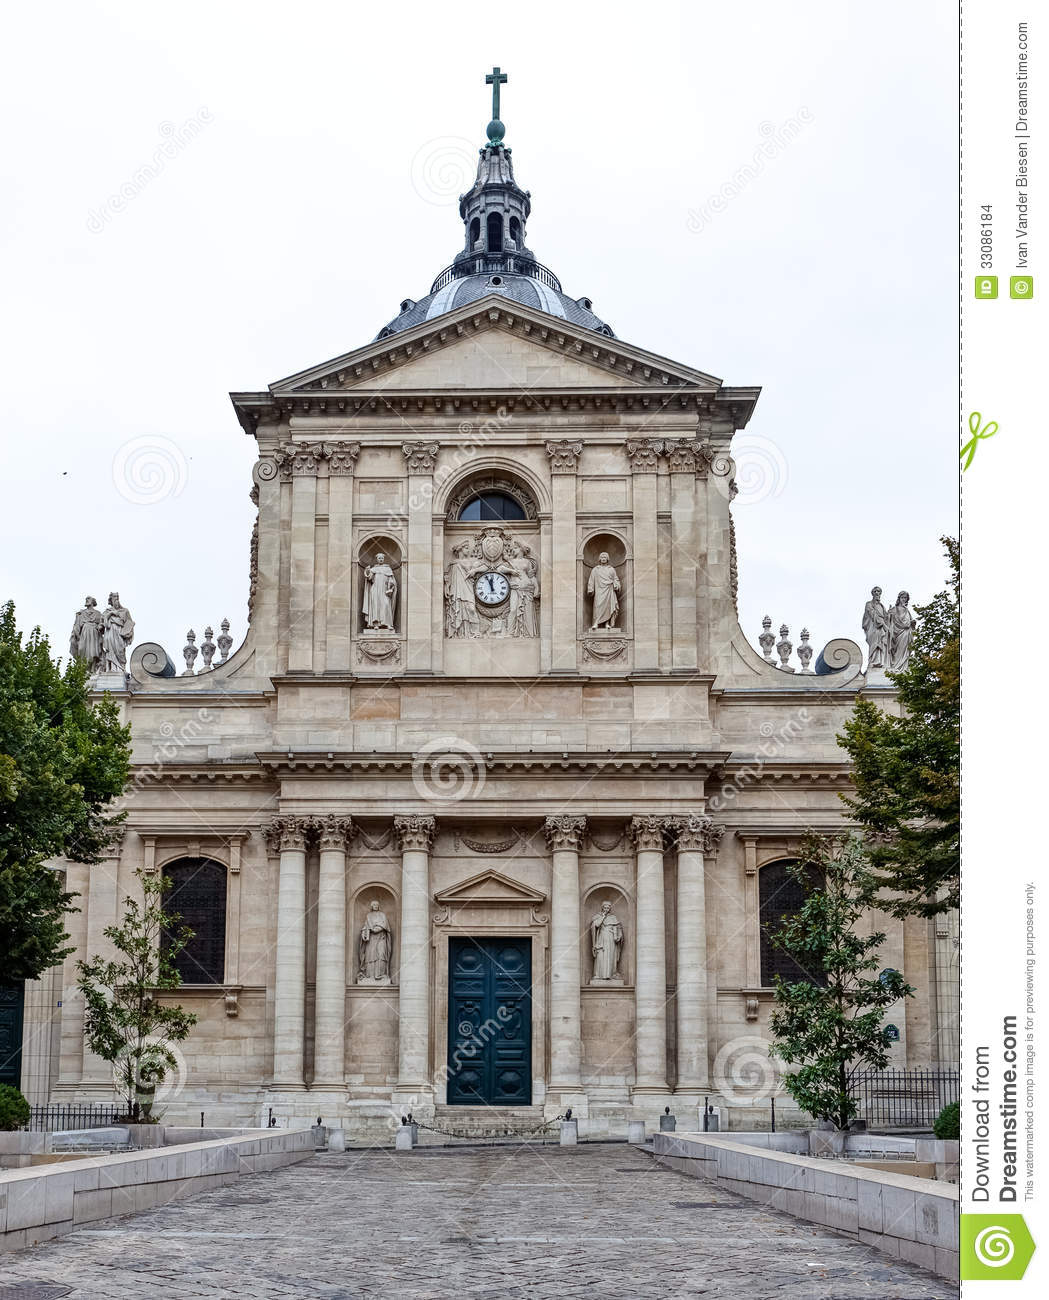 Sorbonne university paris france stock photo image of for Sorbonne paris